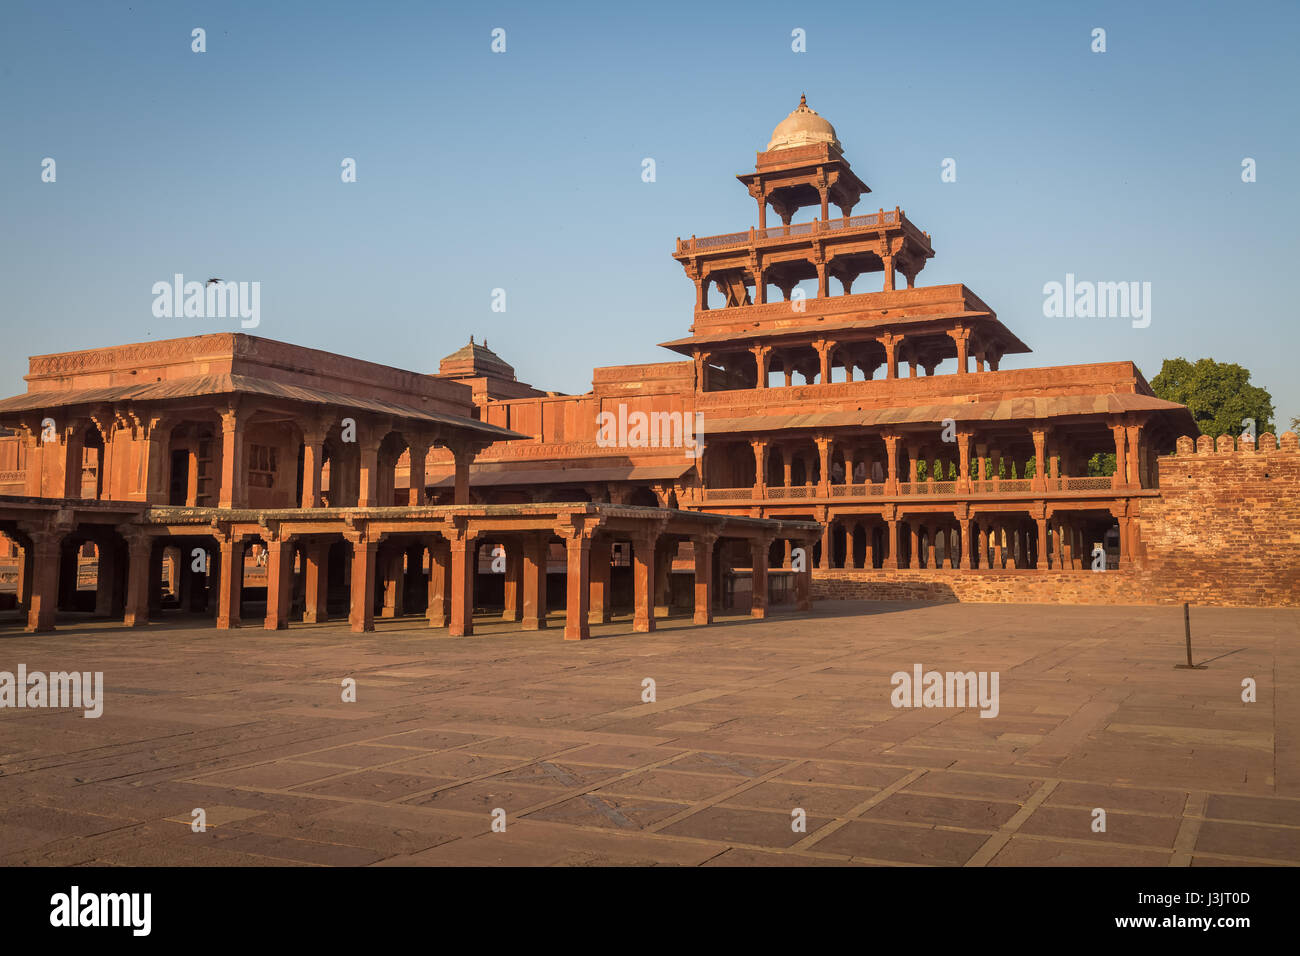 historic indian architecture building panch mahal built by mughal